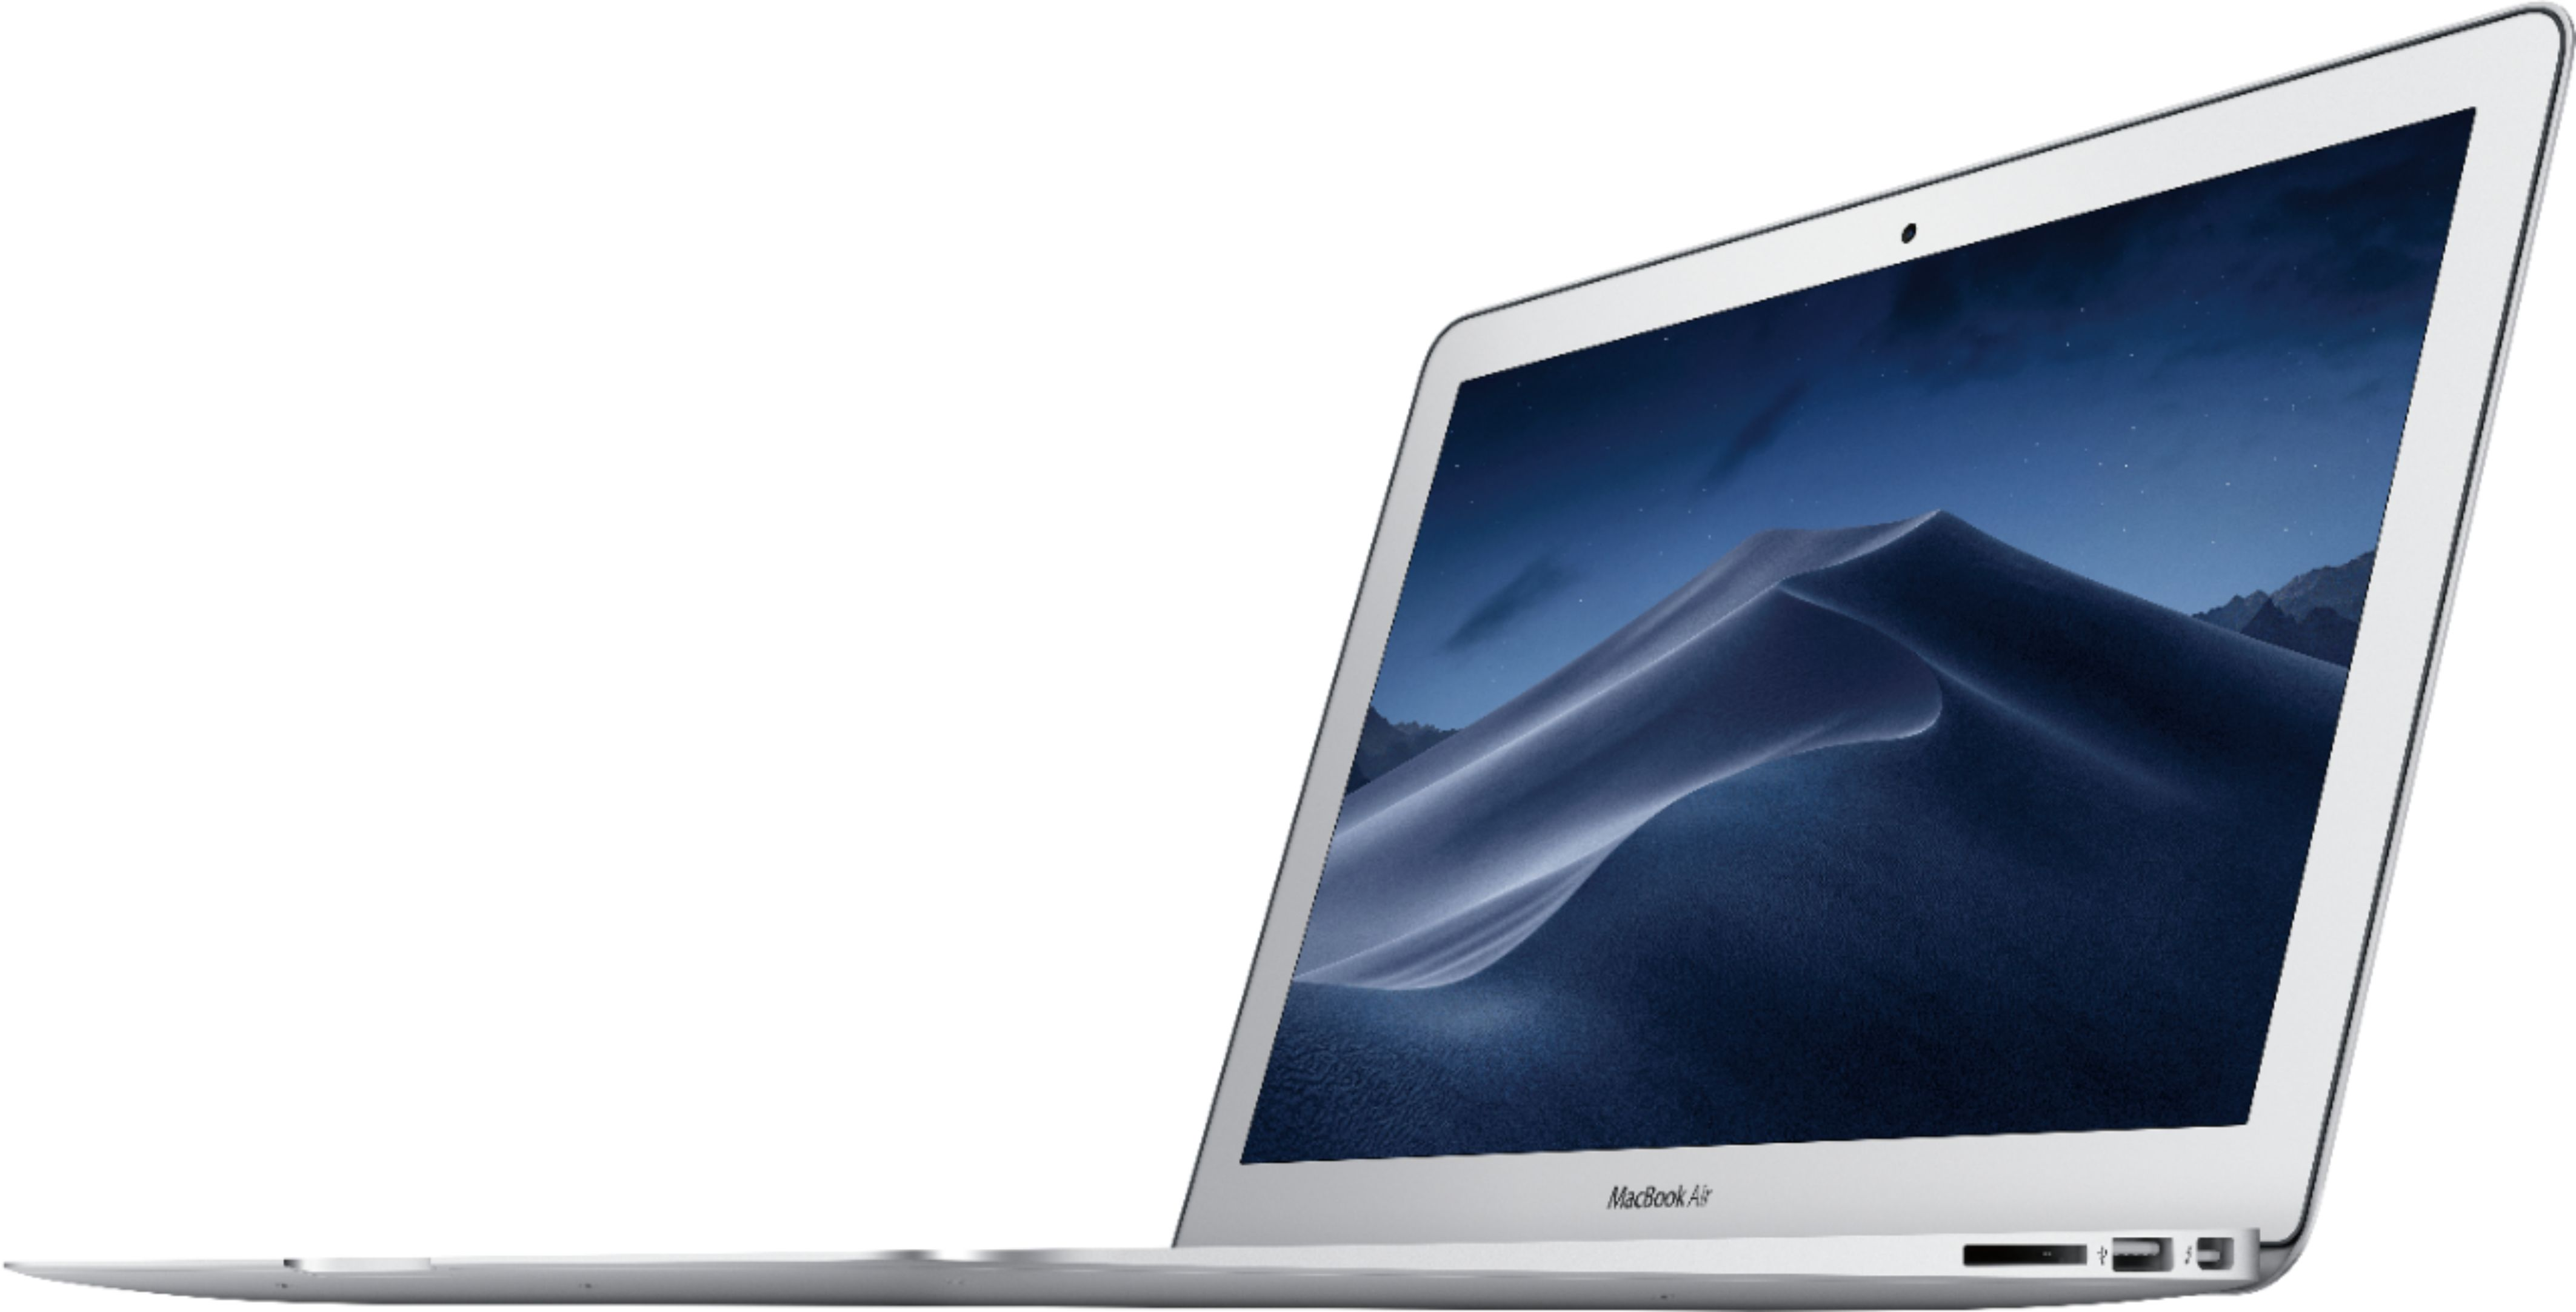 "Left Zoom. Apple - MacBook Air® - 13.3"" Display - Intel Core i5 - 8GB Memory - 512GB Solid State Drive - Silver."